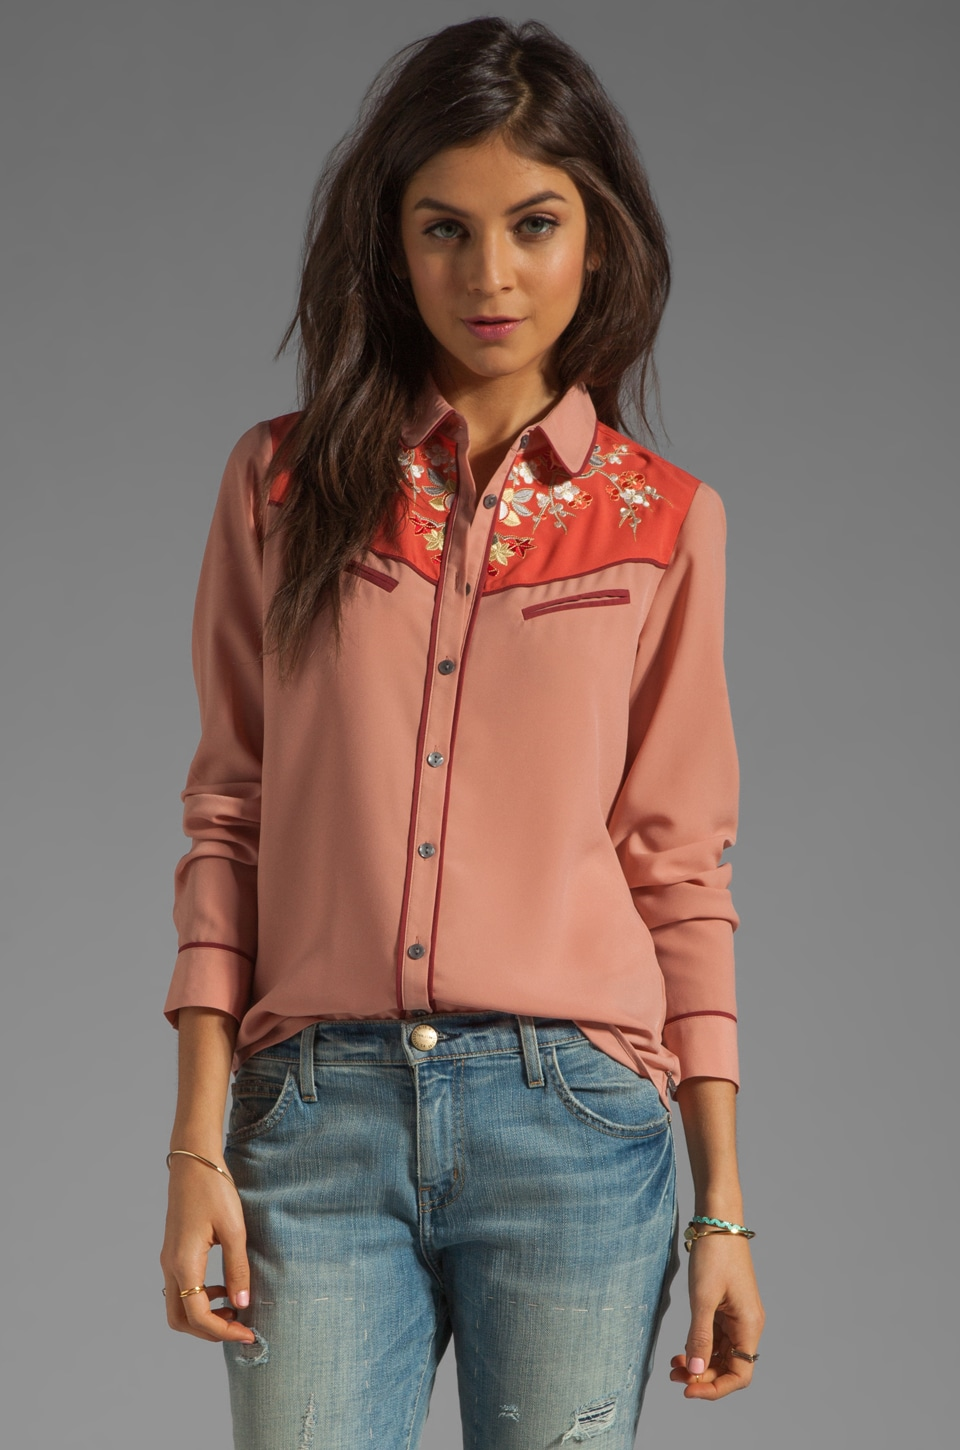 Maison Scotch Western Shirt in Dusty Rose